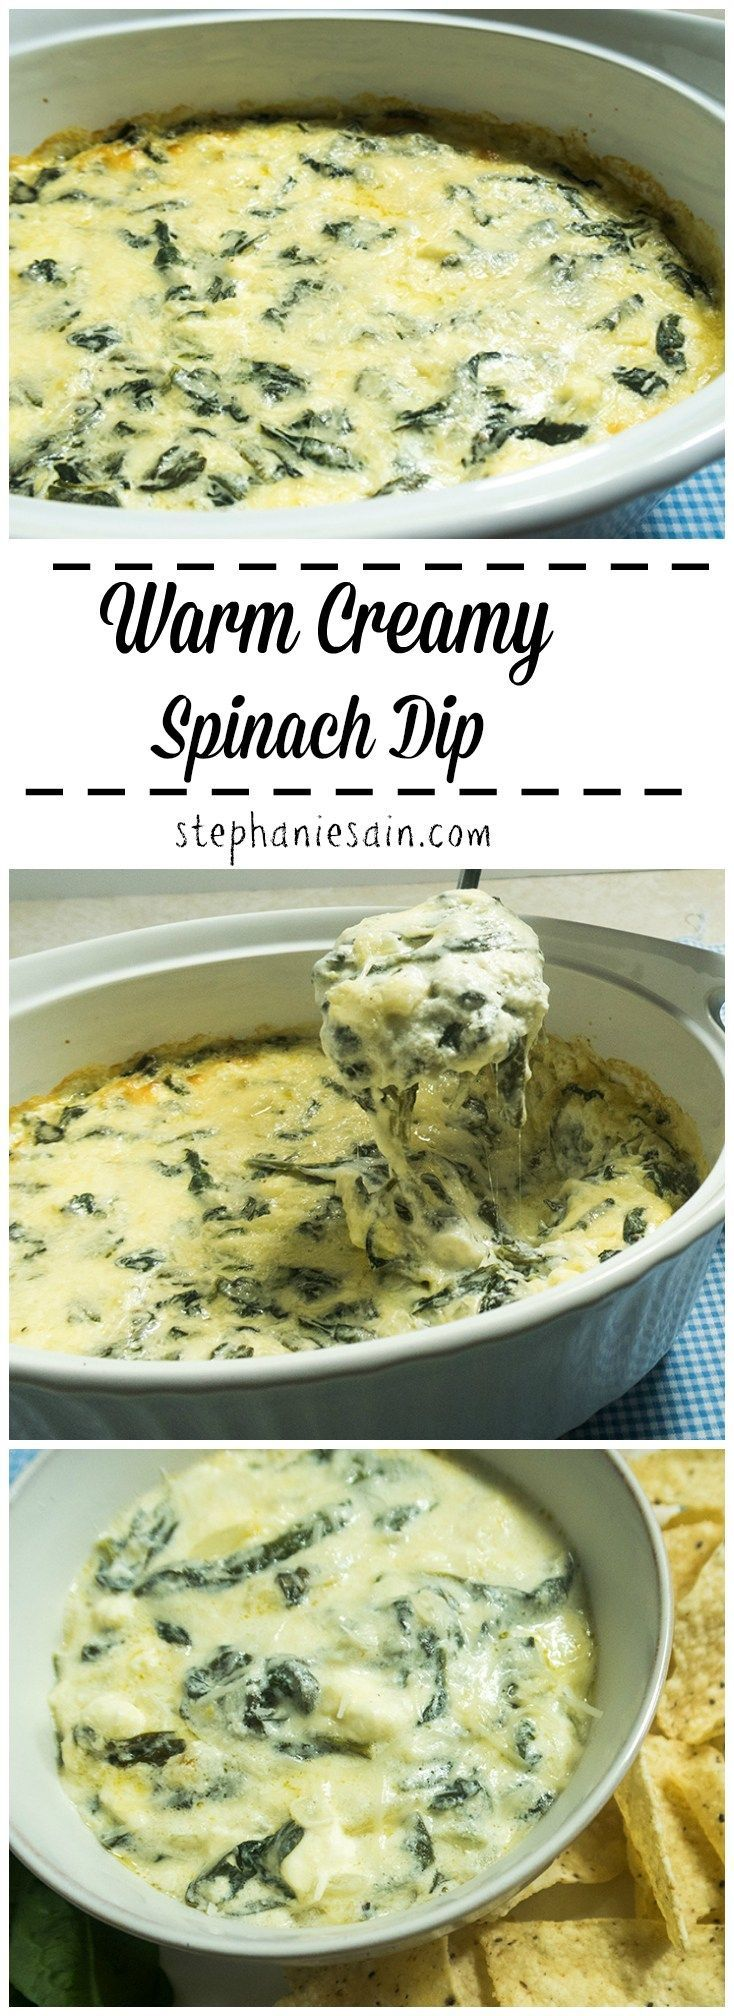 Warm Creamy Spinach Dip is an easy to prepare tasty appetizer. Perfect for entertaining or anytime you want a tasty appetizer. Vegetarian & Gluten Free.